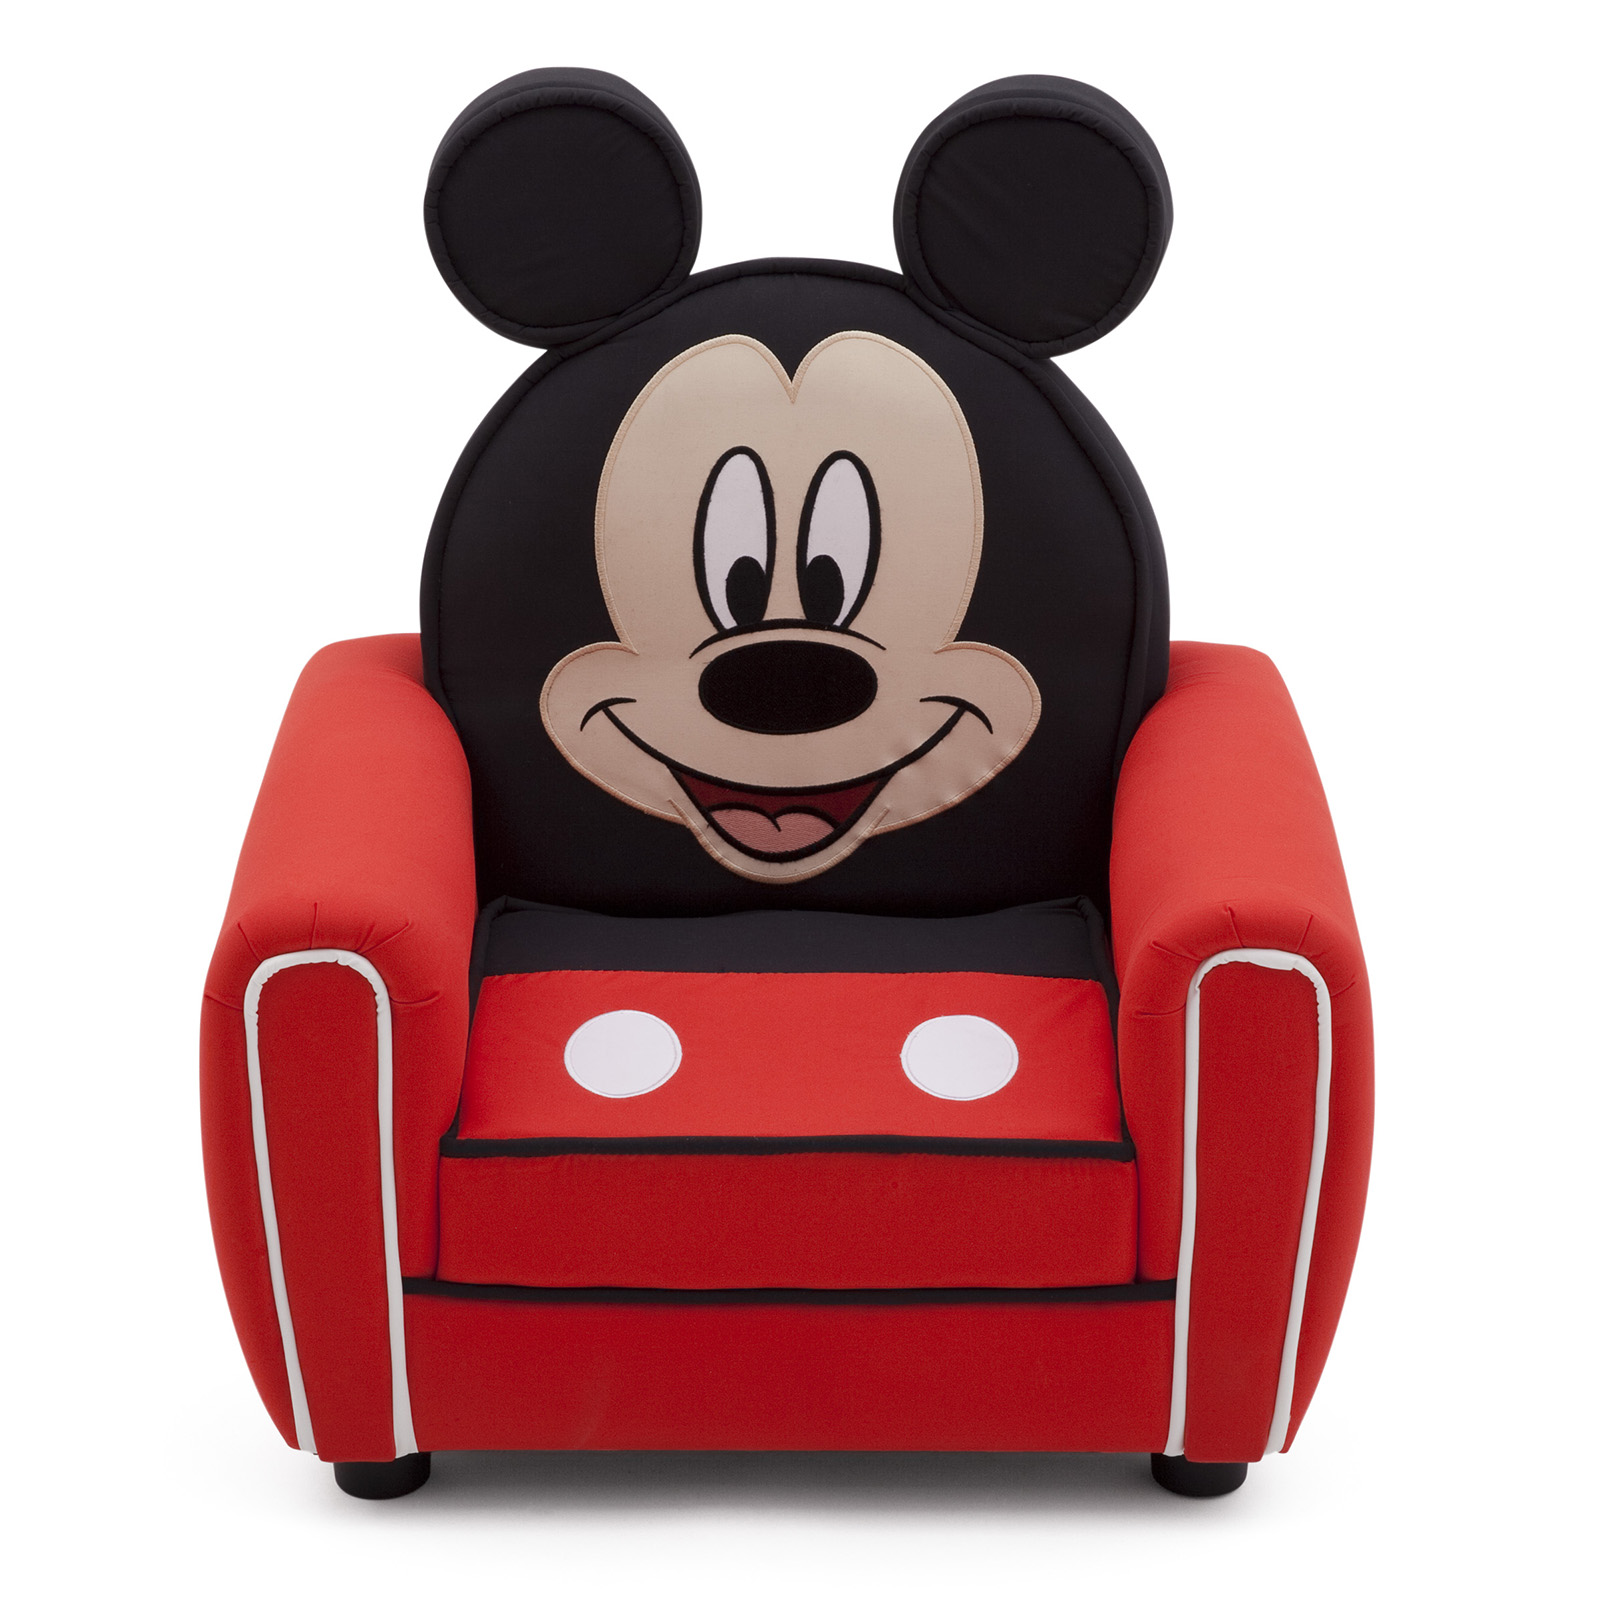 mickey mouse armchair uk booster seat straps to chair new delta children disney figural upholstered